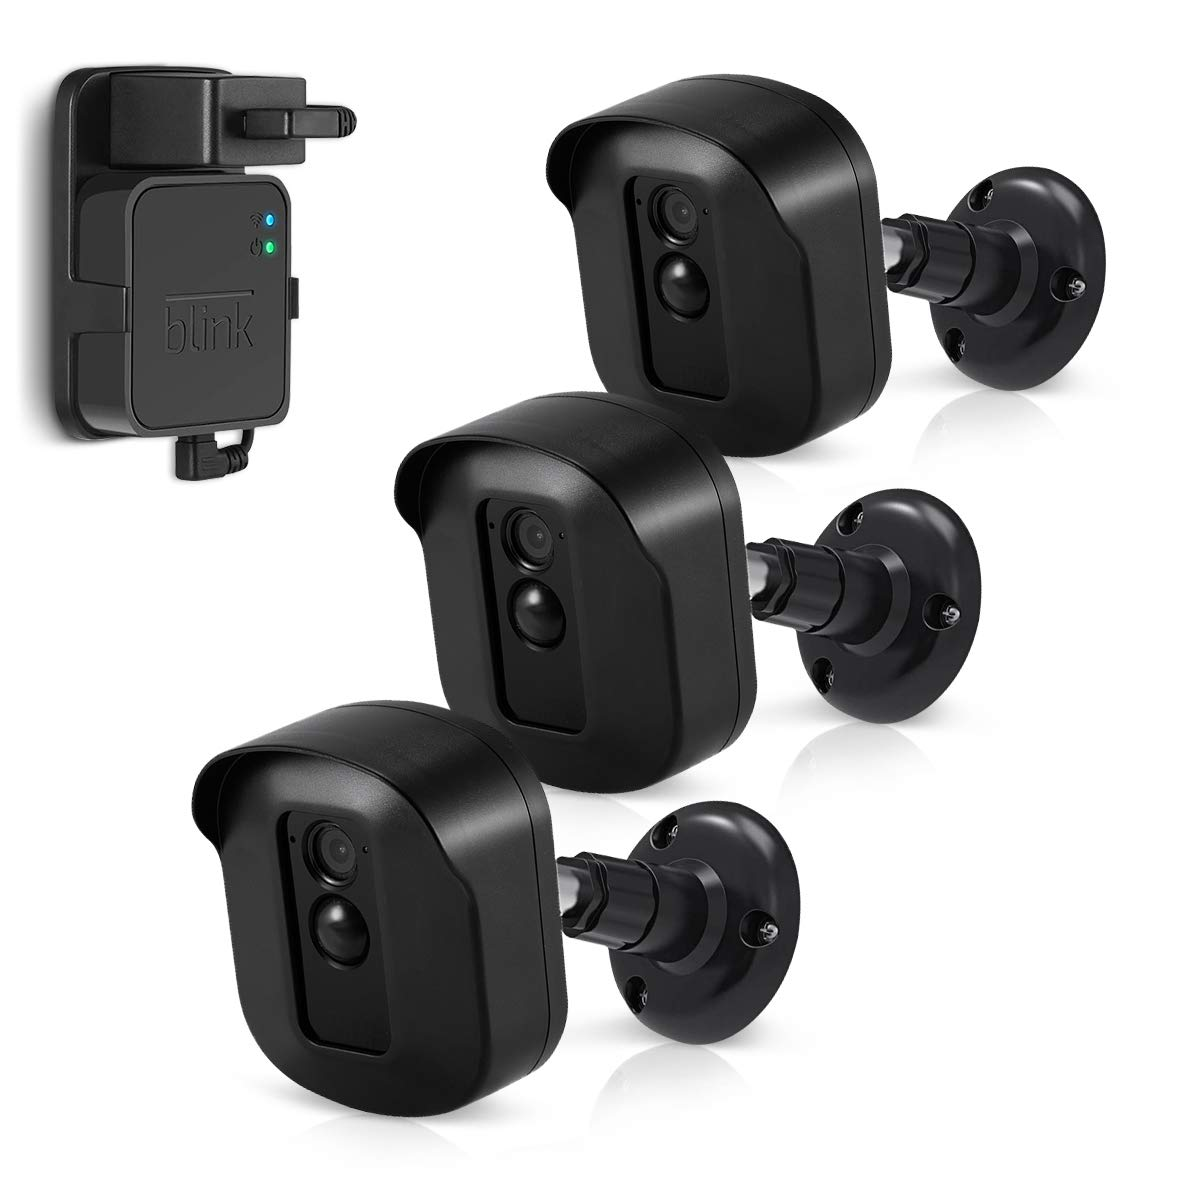 Blink XT2 Camera Wall Mount Bracket, Caremoo 3 Pack Weatherproof Protective Housing/Mount and Blink Sync Module Outlet Mount for Blink XT2/ Blink XT Outdoor/Indoor Smart Security Camera (Black)